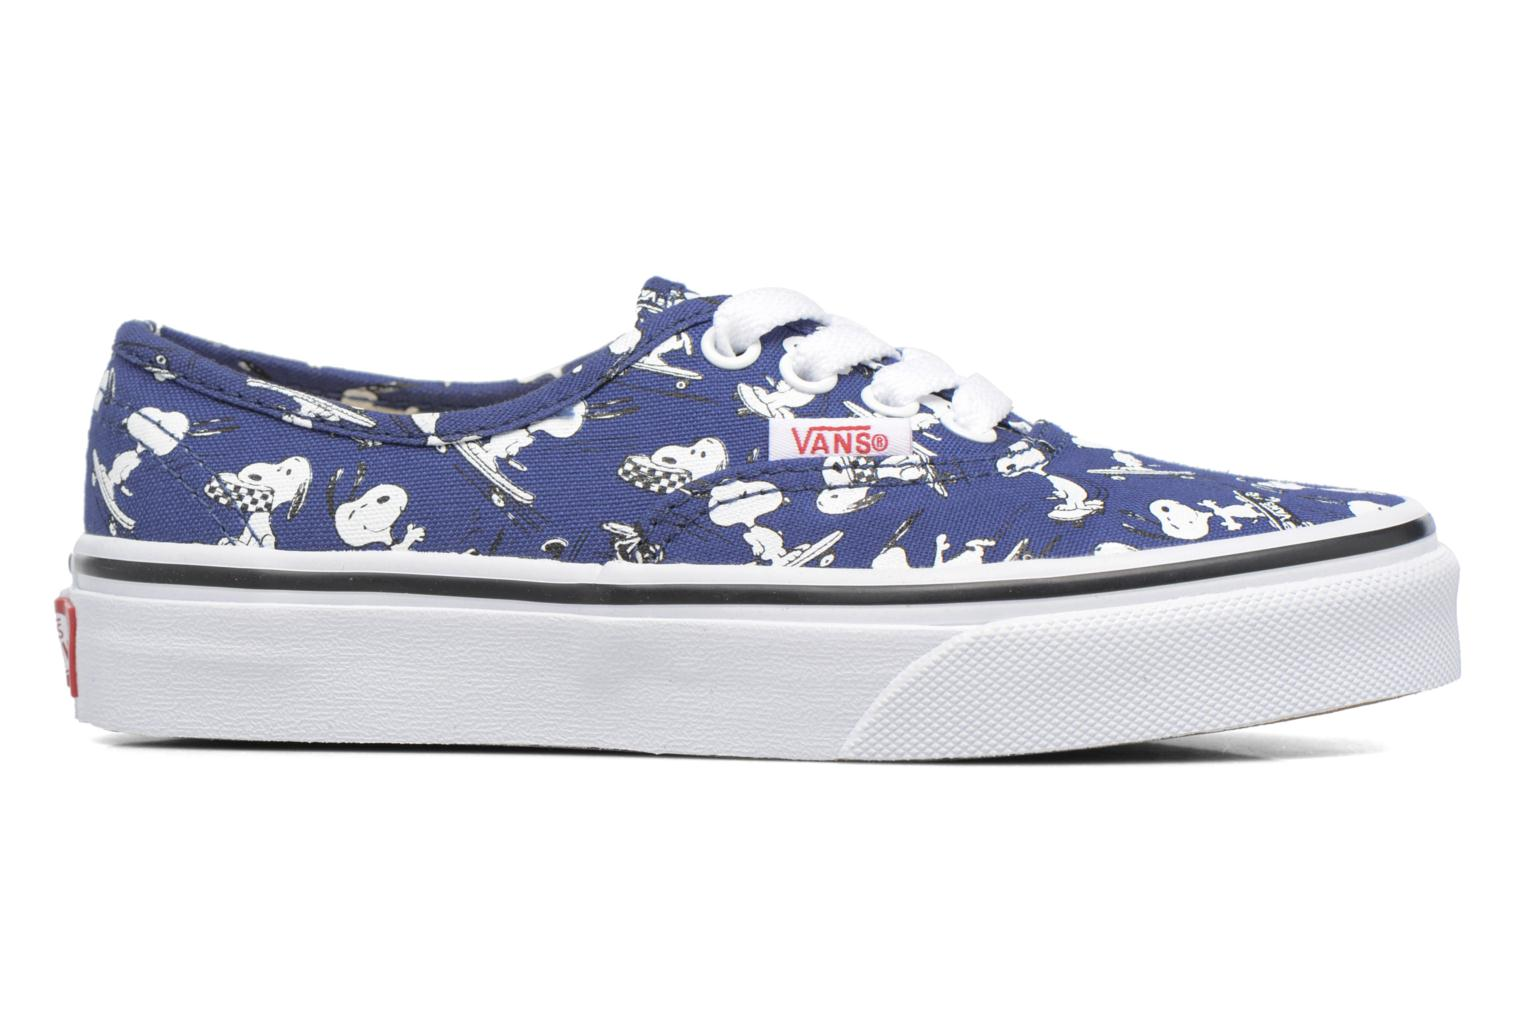 Authentic E Snoopy/Skating (Peanuts)